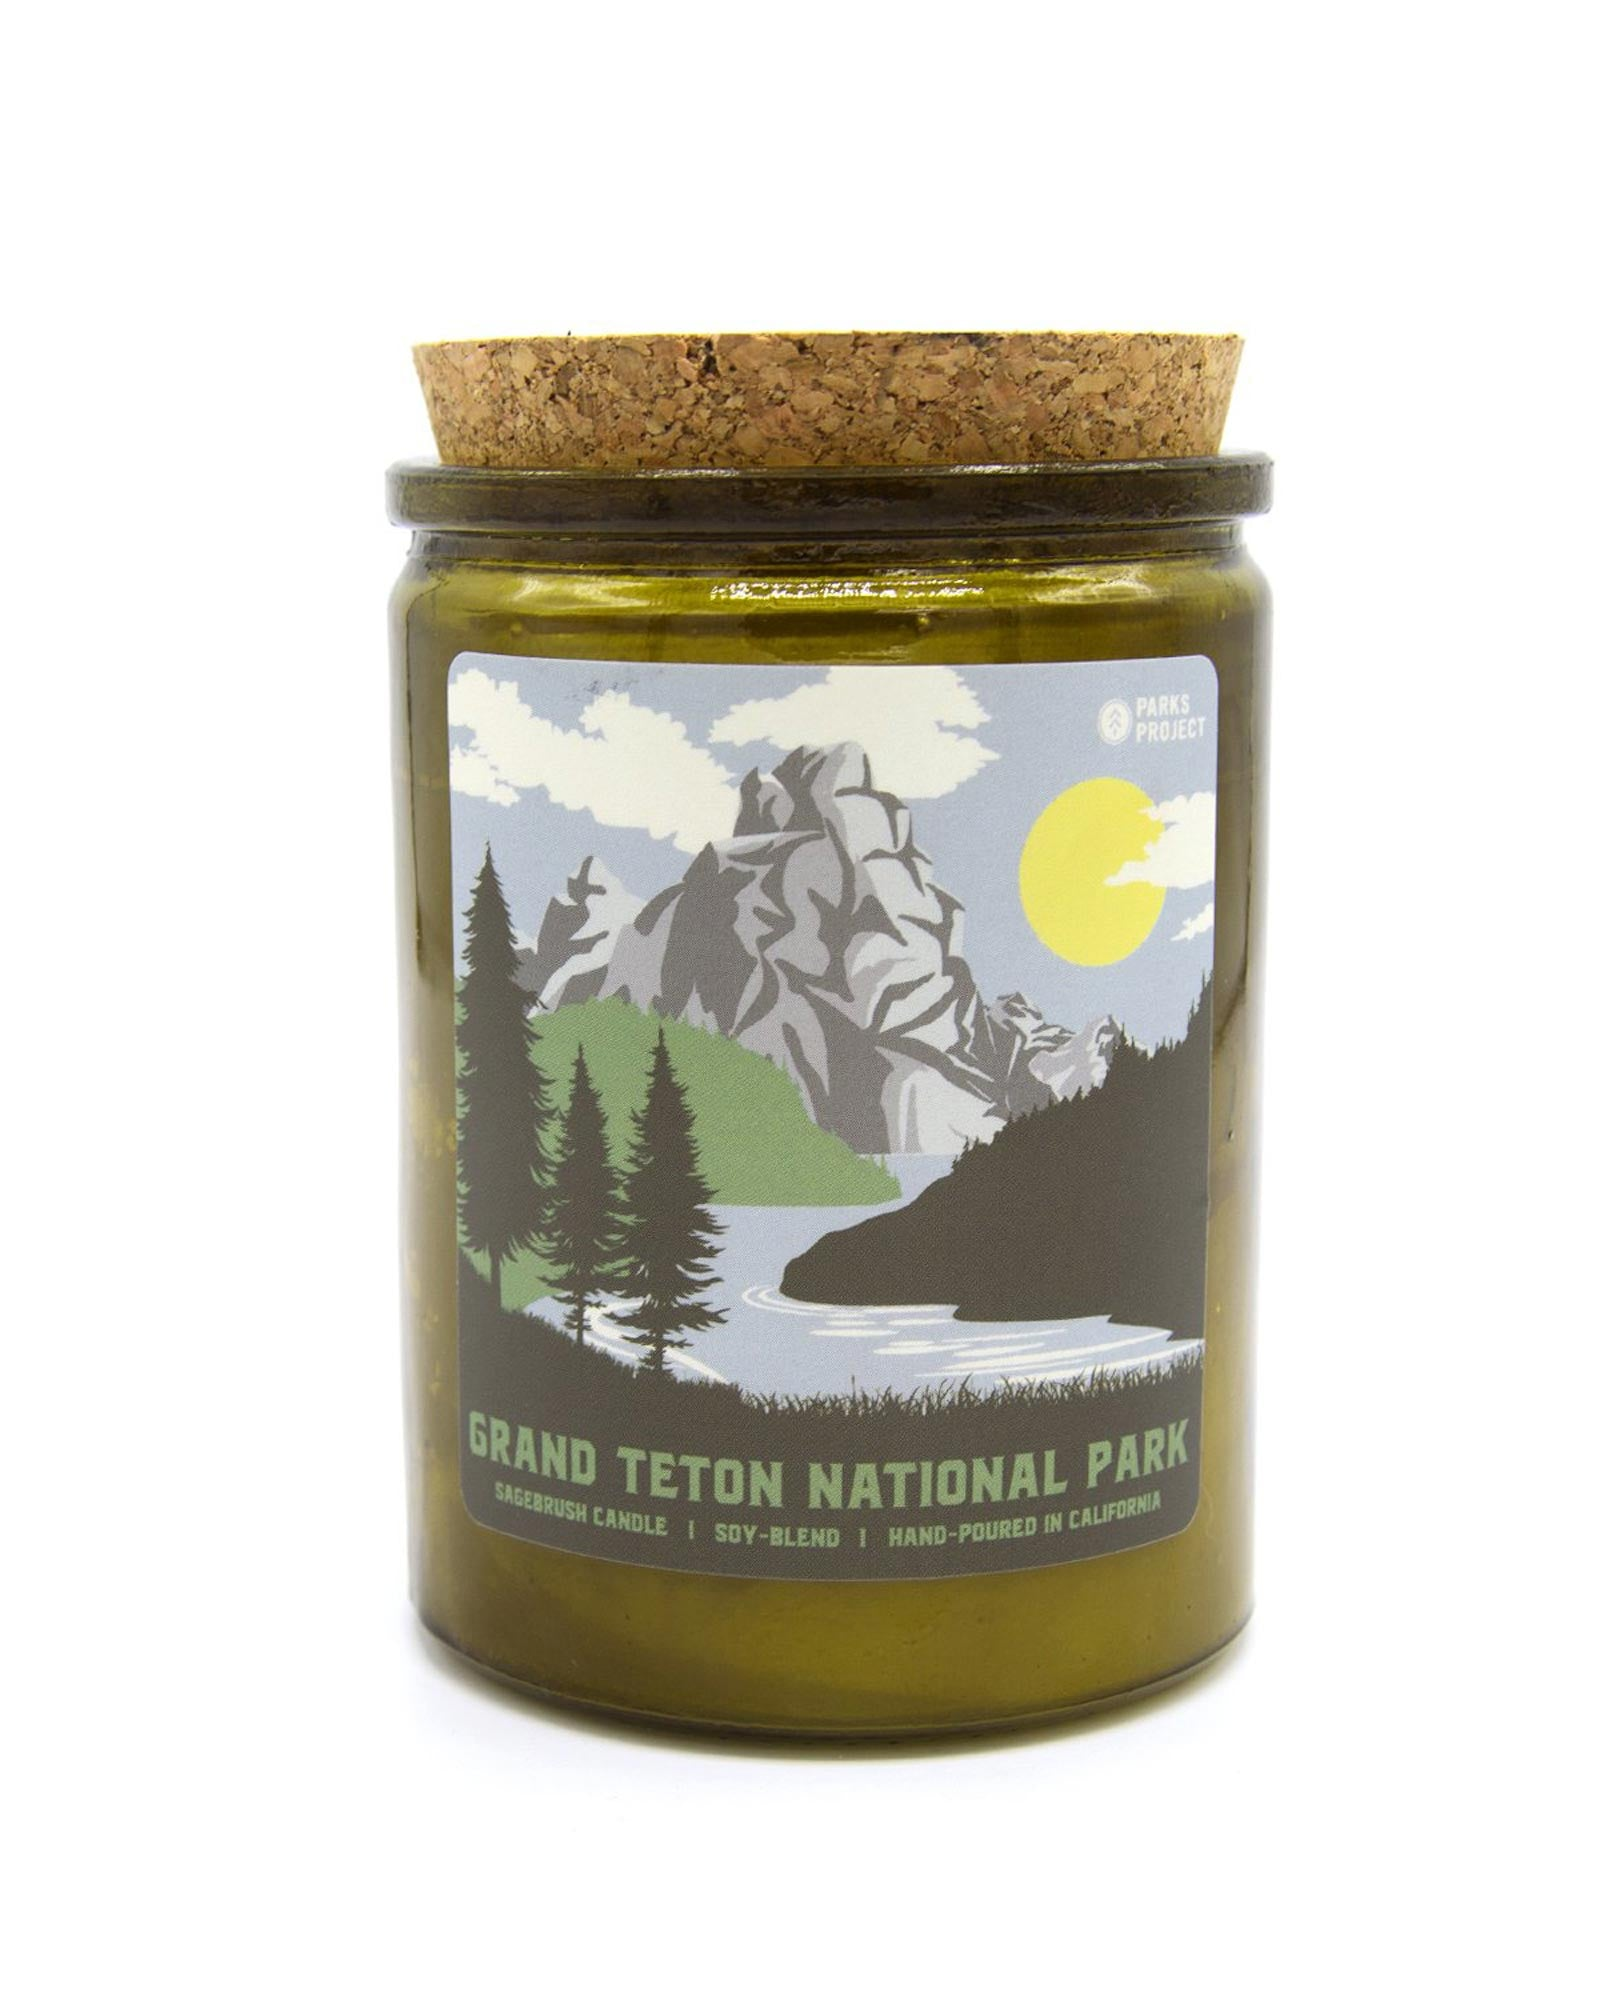 Grand Teton National Park Sagebrush Candle | Parks Project | National Park Candles